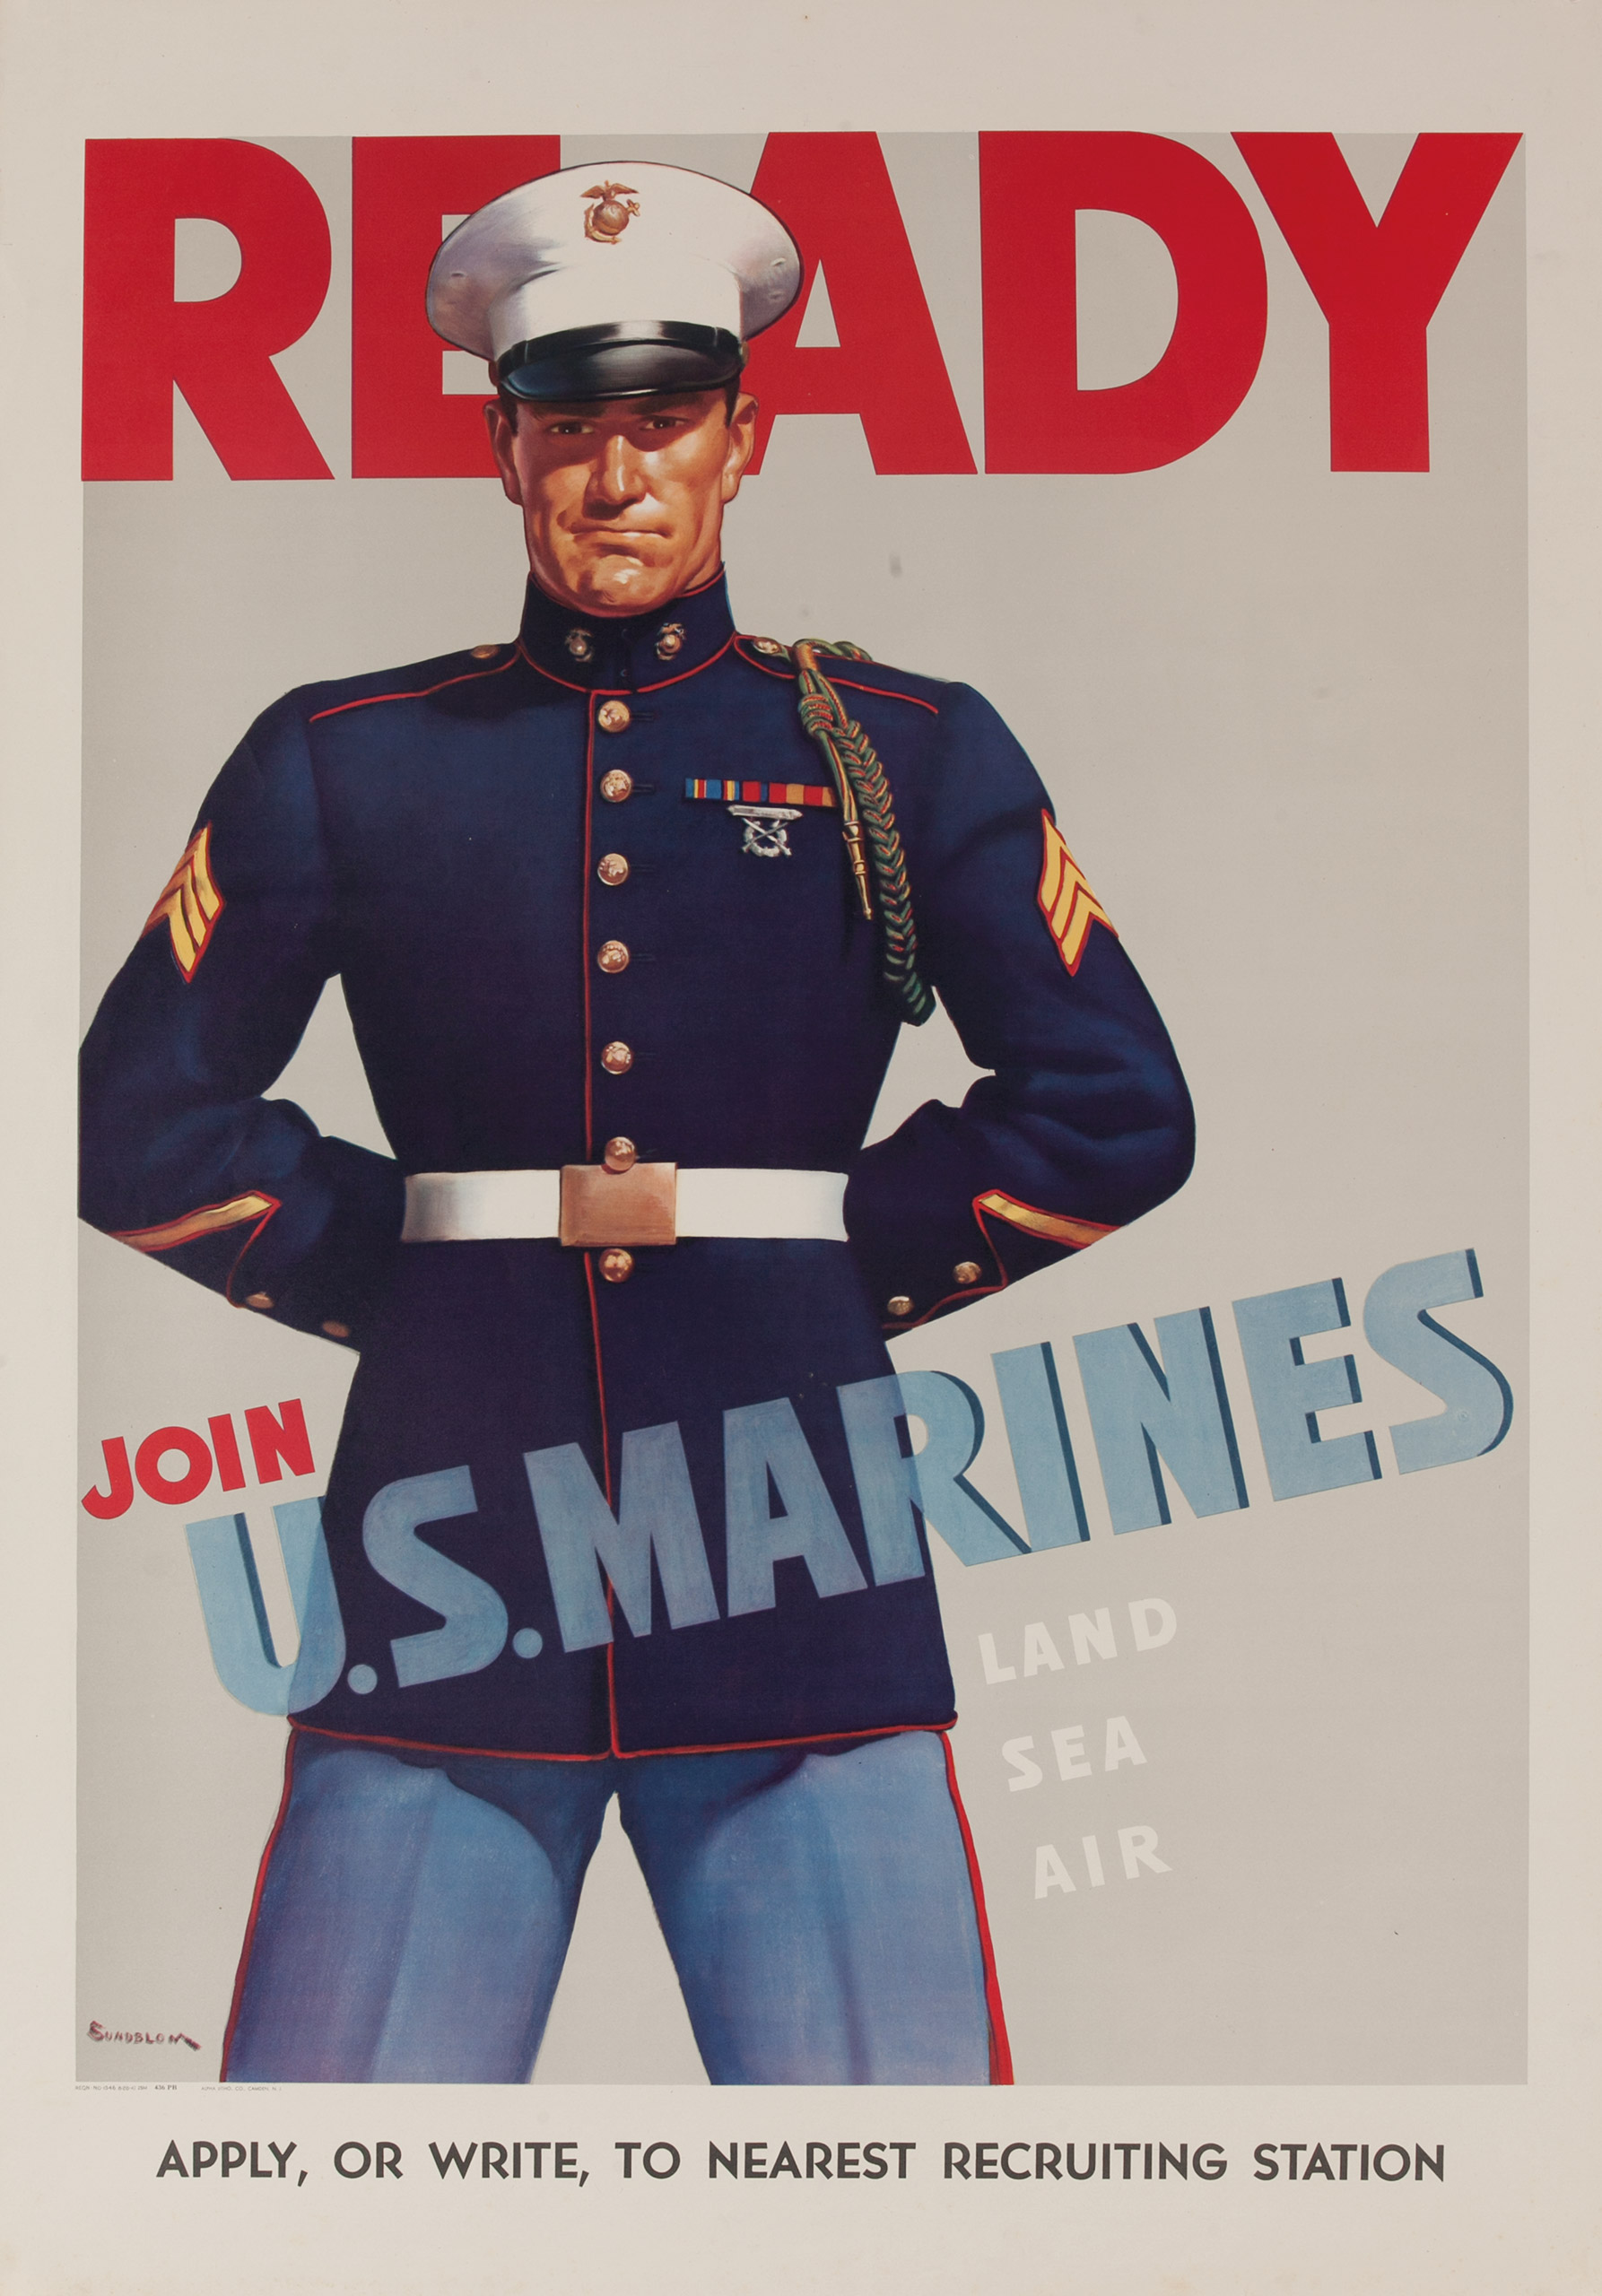 Ready, Join U.S. Marines, Land Air Sea. 1942